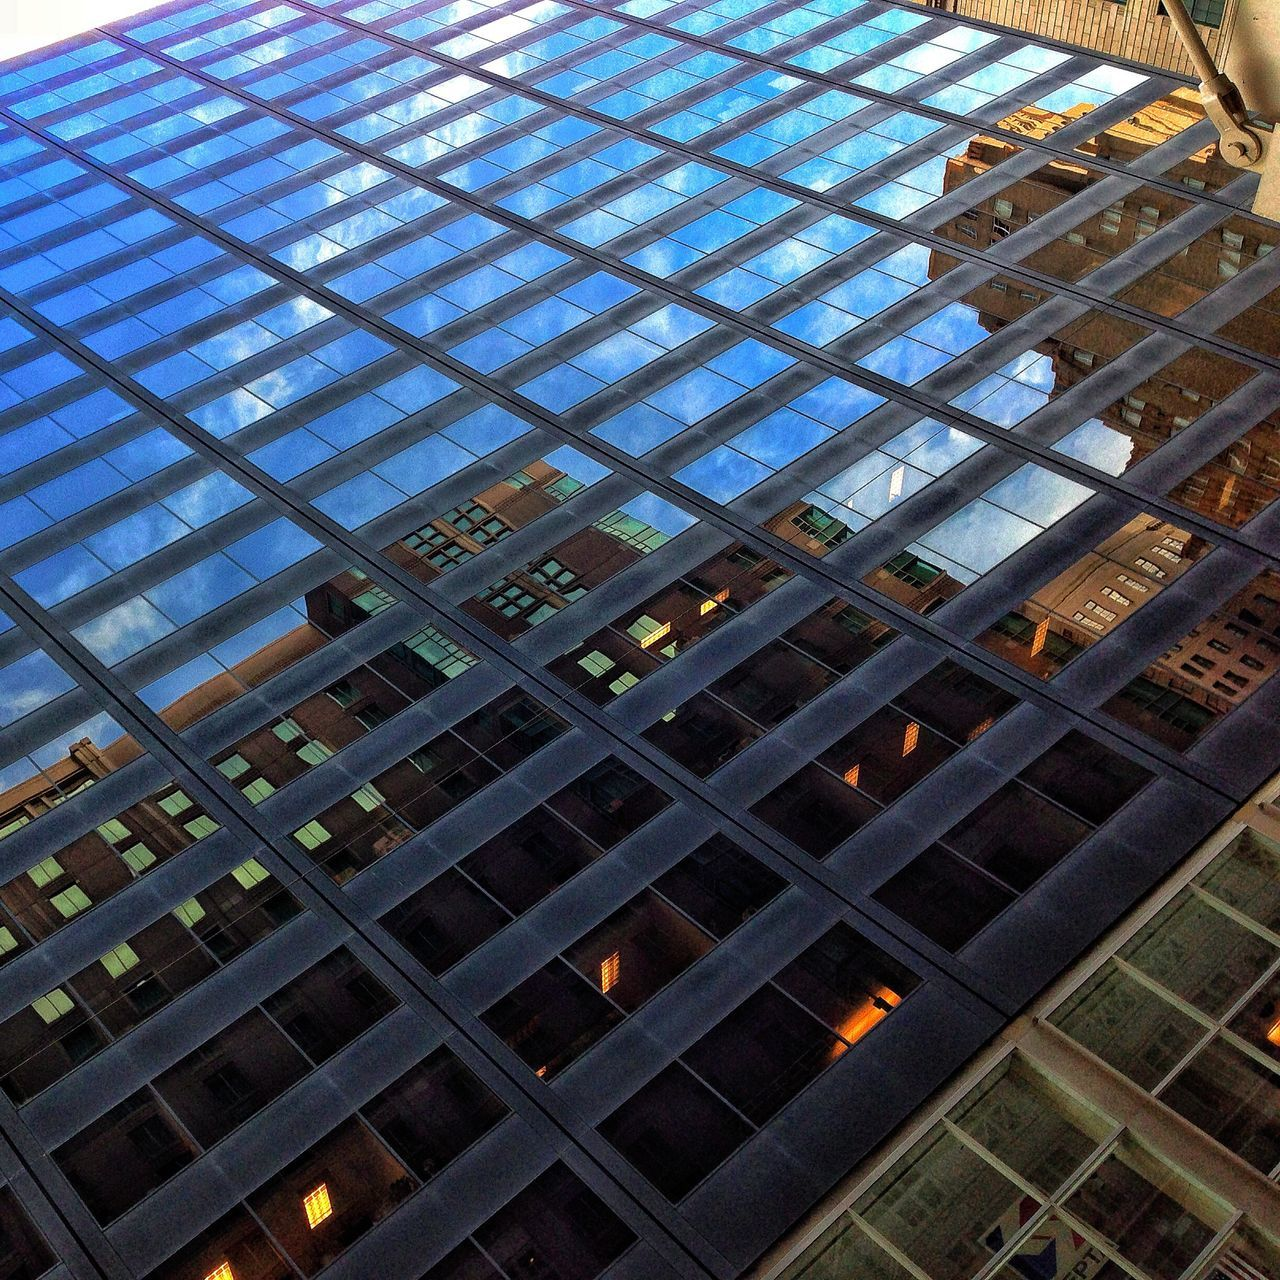 architecture, built structure, low angle view, building exterior, window, day, reflection, modern, indoors, no people, skyscraper, city, sky